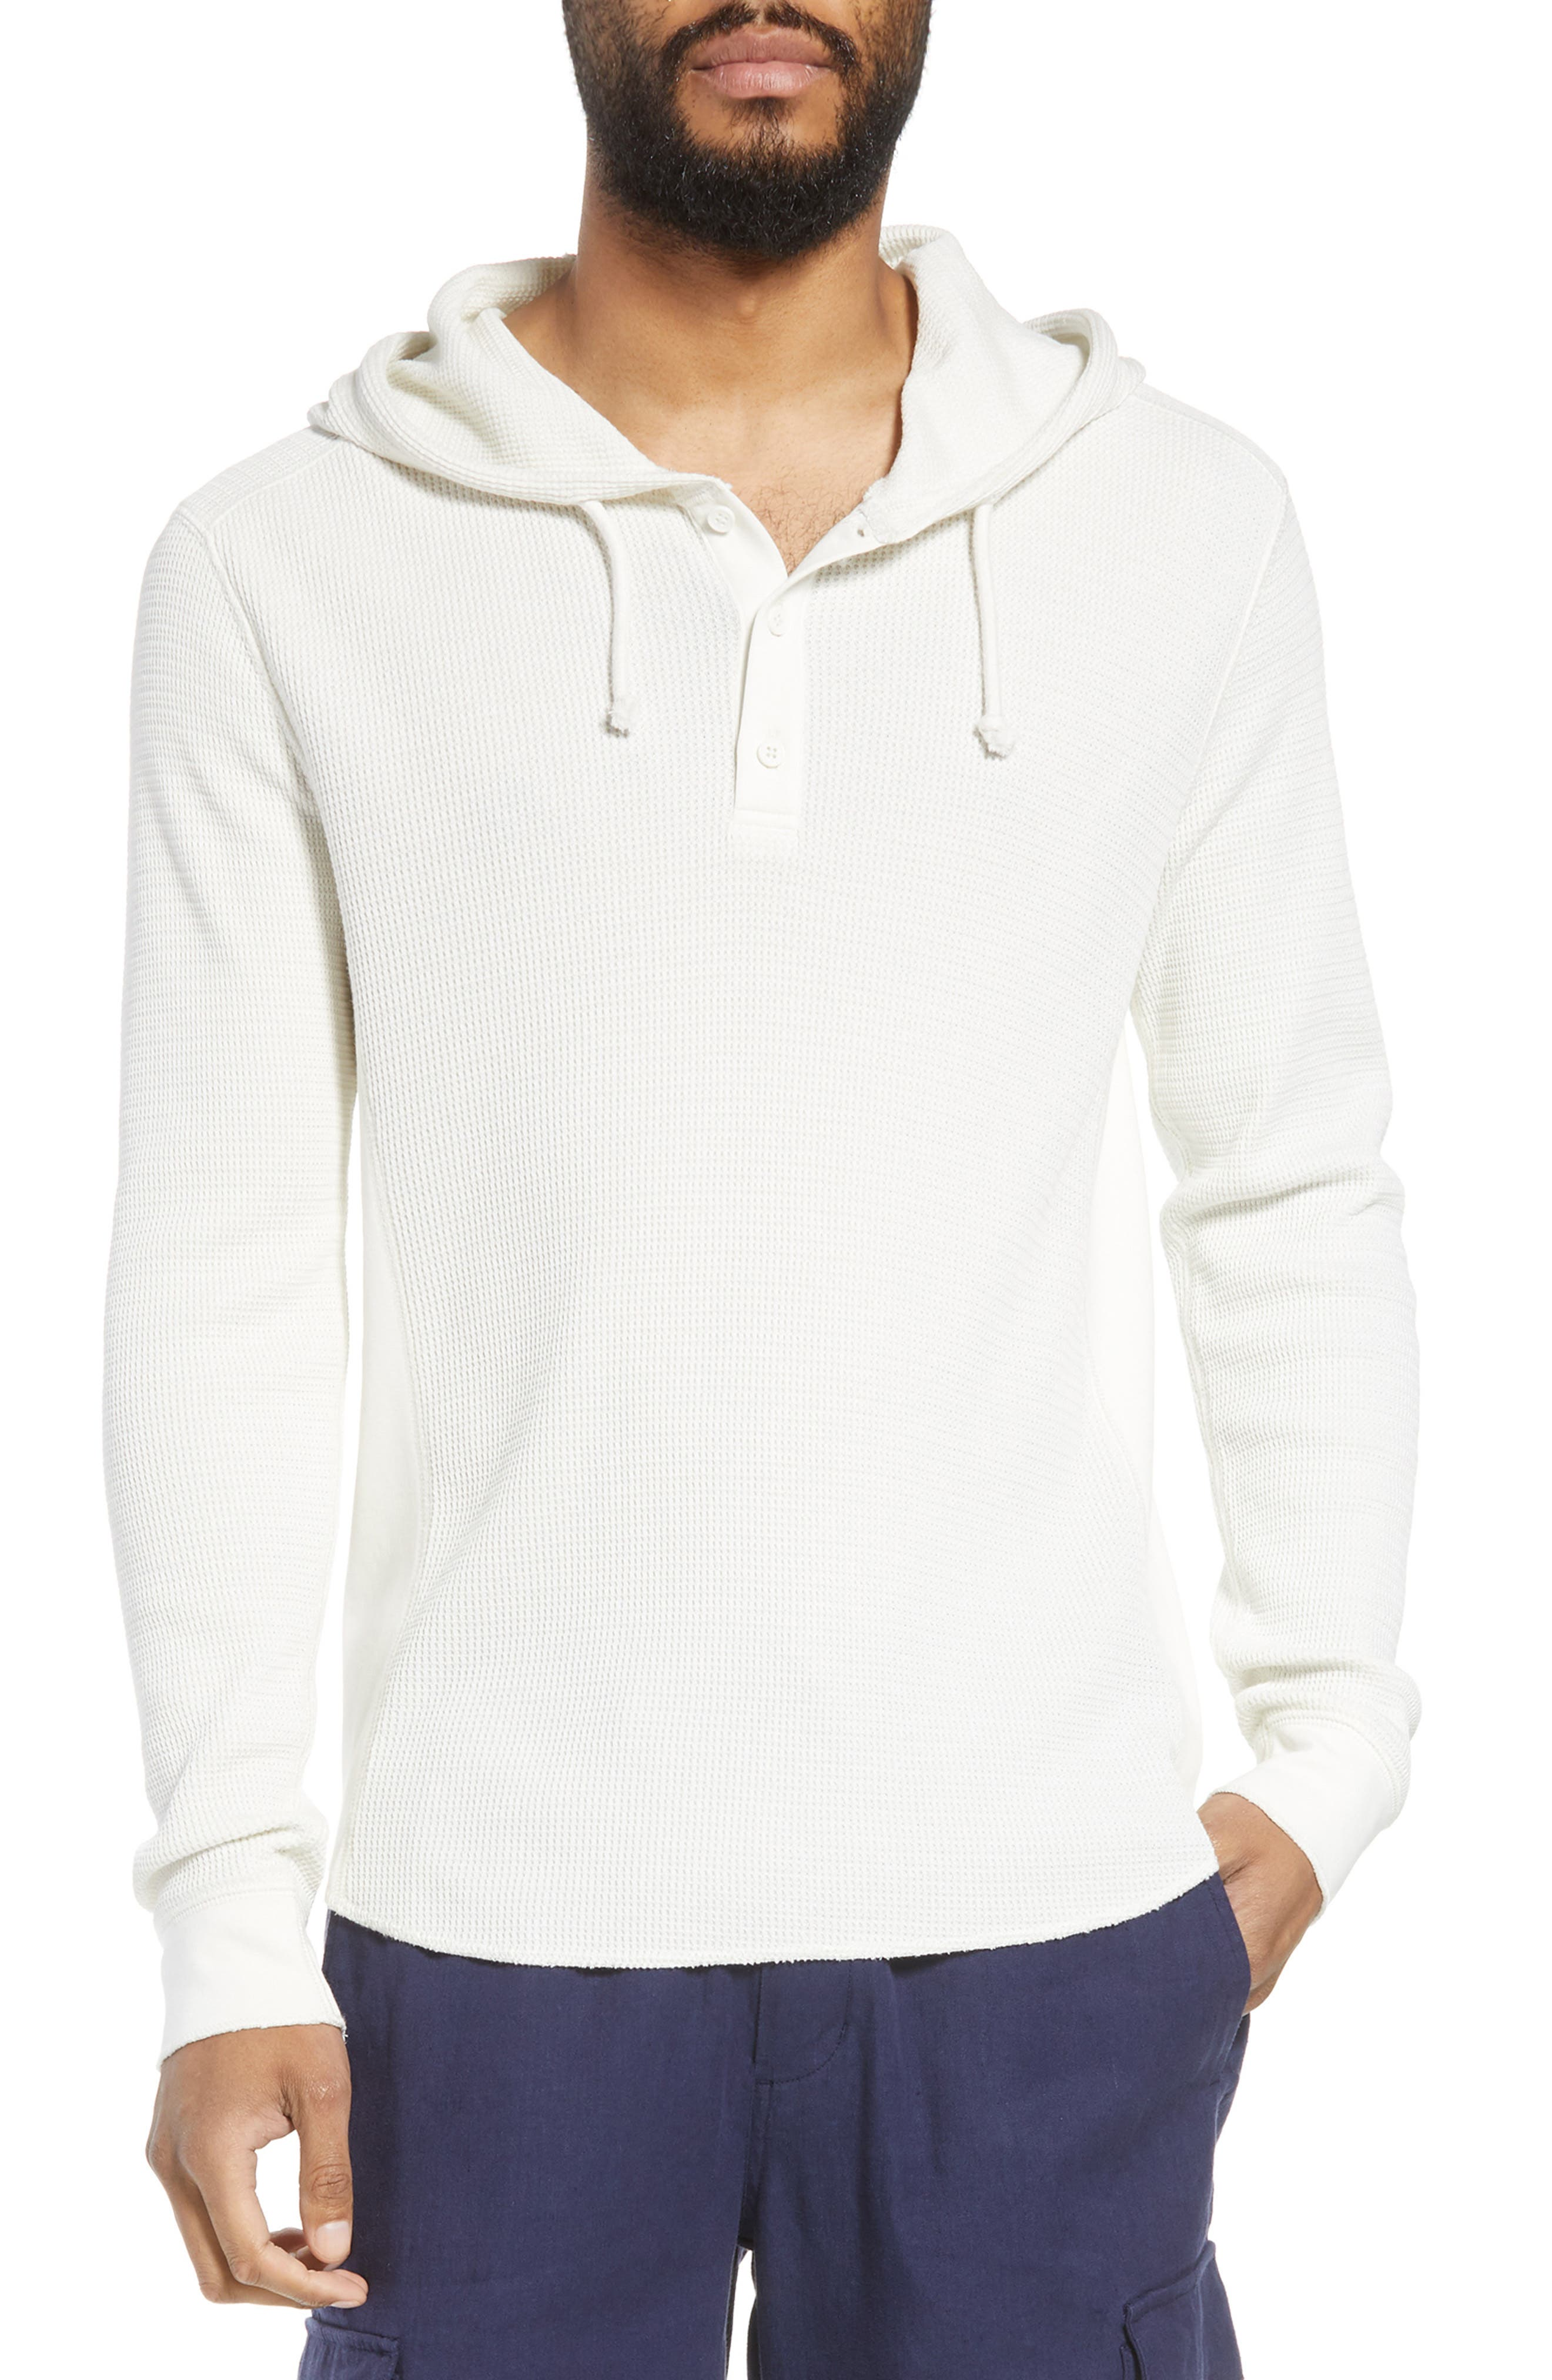 Regular Fit Thermal Knit Pullover Hoodie,                             Main thumbnail 1, color,                             110